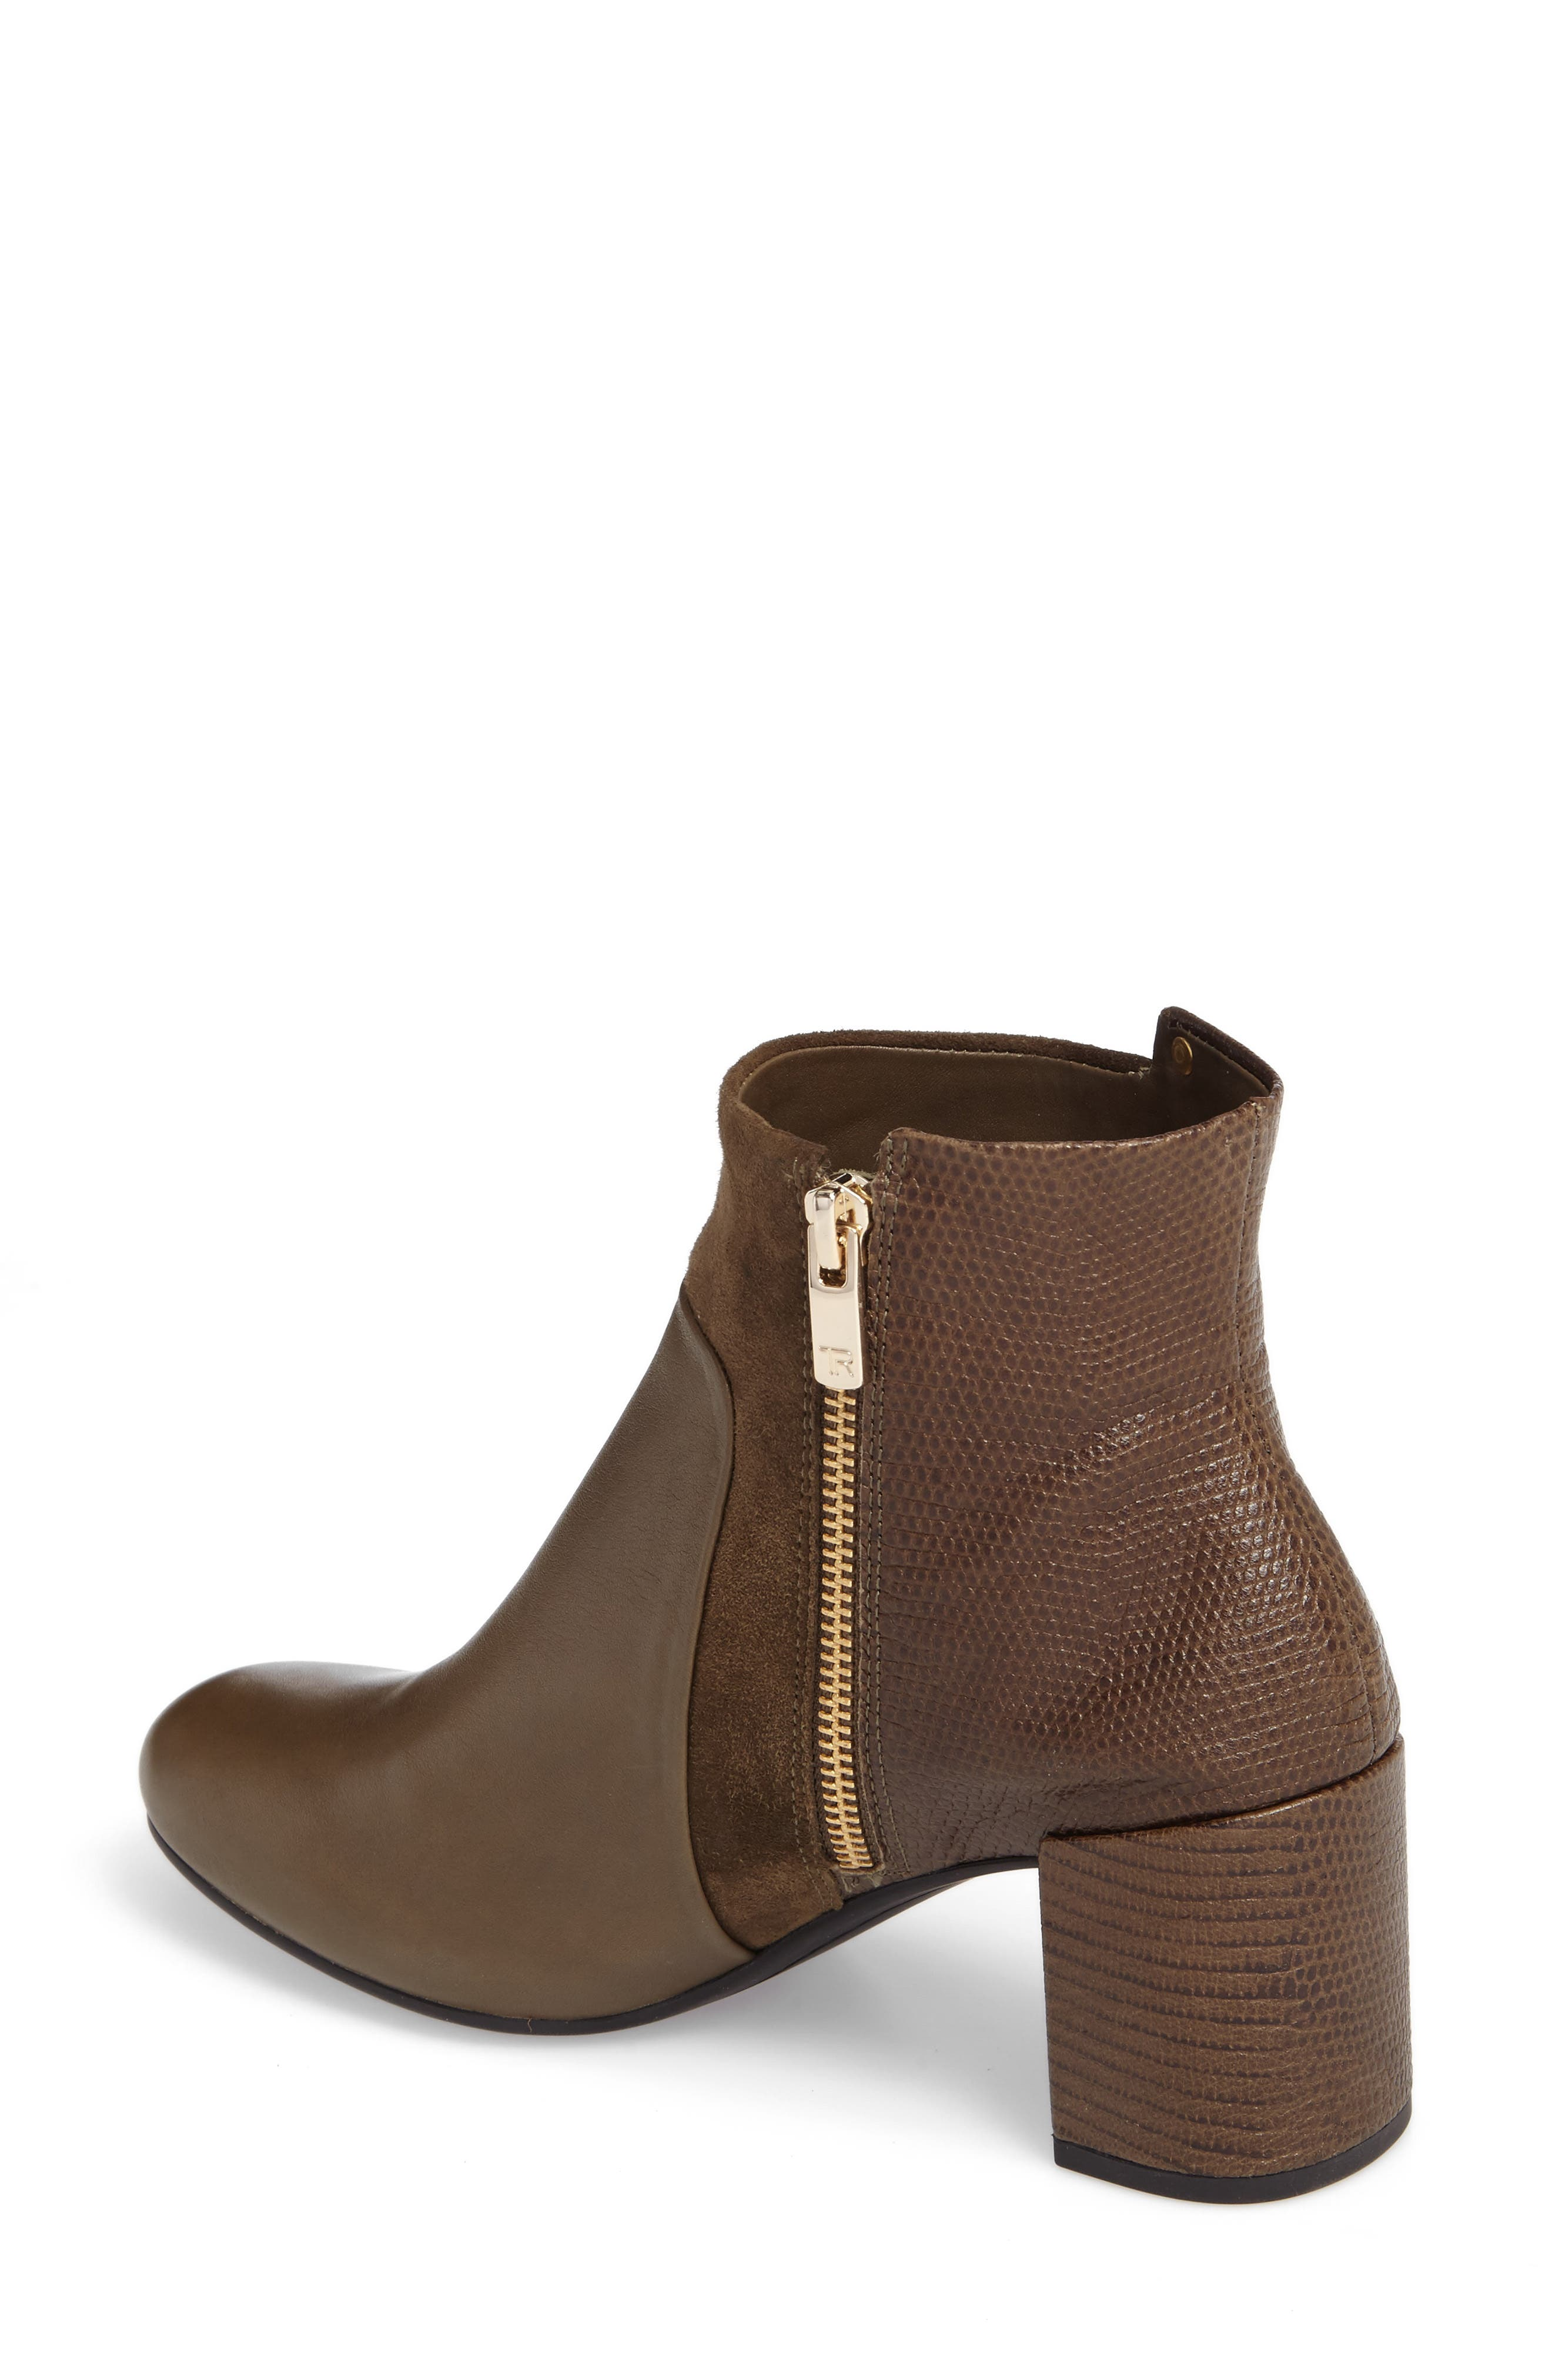 Camille Block Heel Bootie,                             Alternate thumbnail 2, color,                             Olive Leather